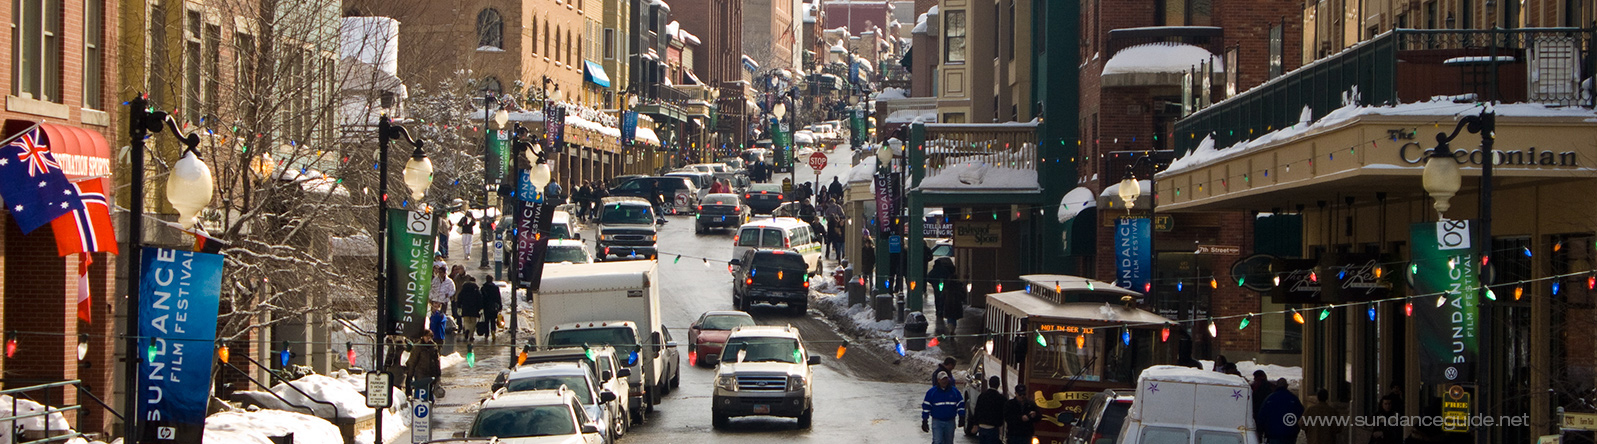 A picture of traffic and shops on Main Street, Park City, Utah